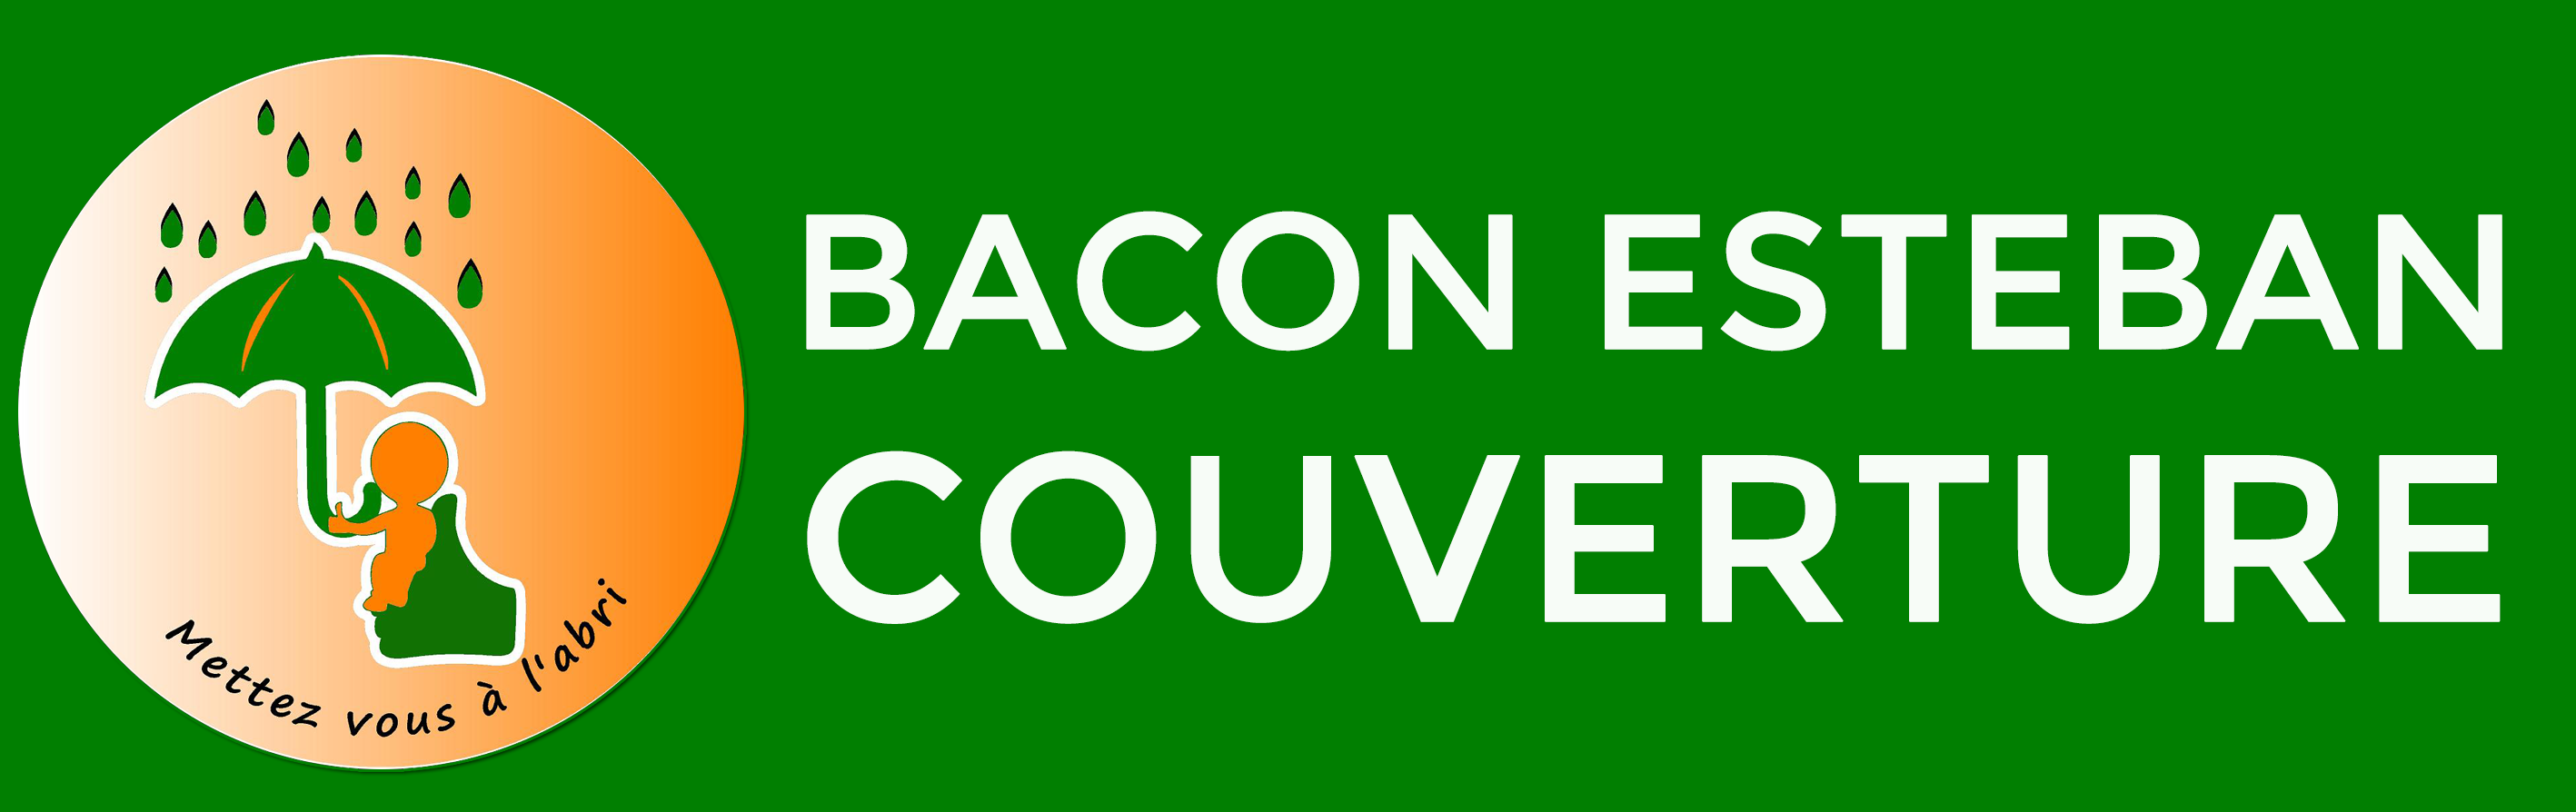 Bacon Esteban Couverture